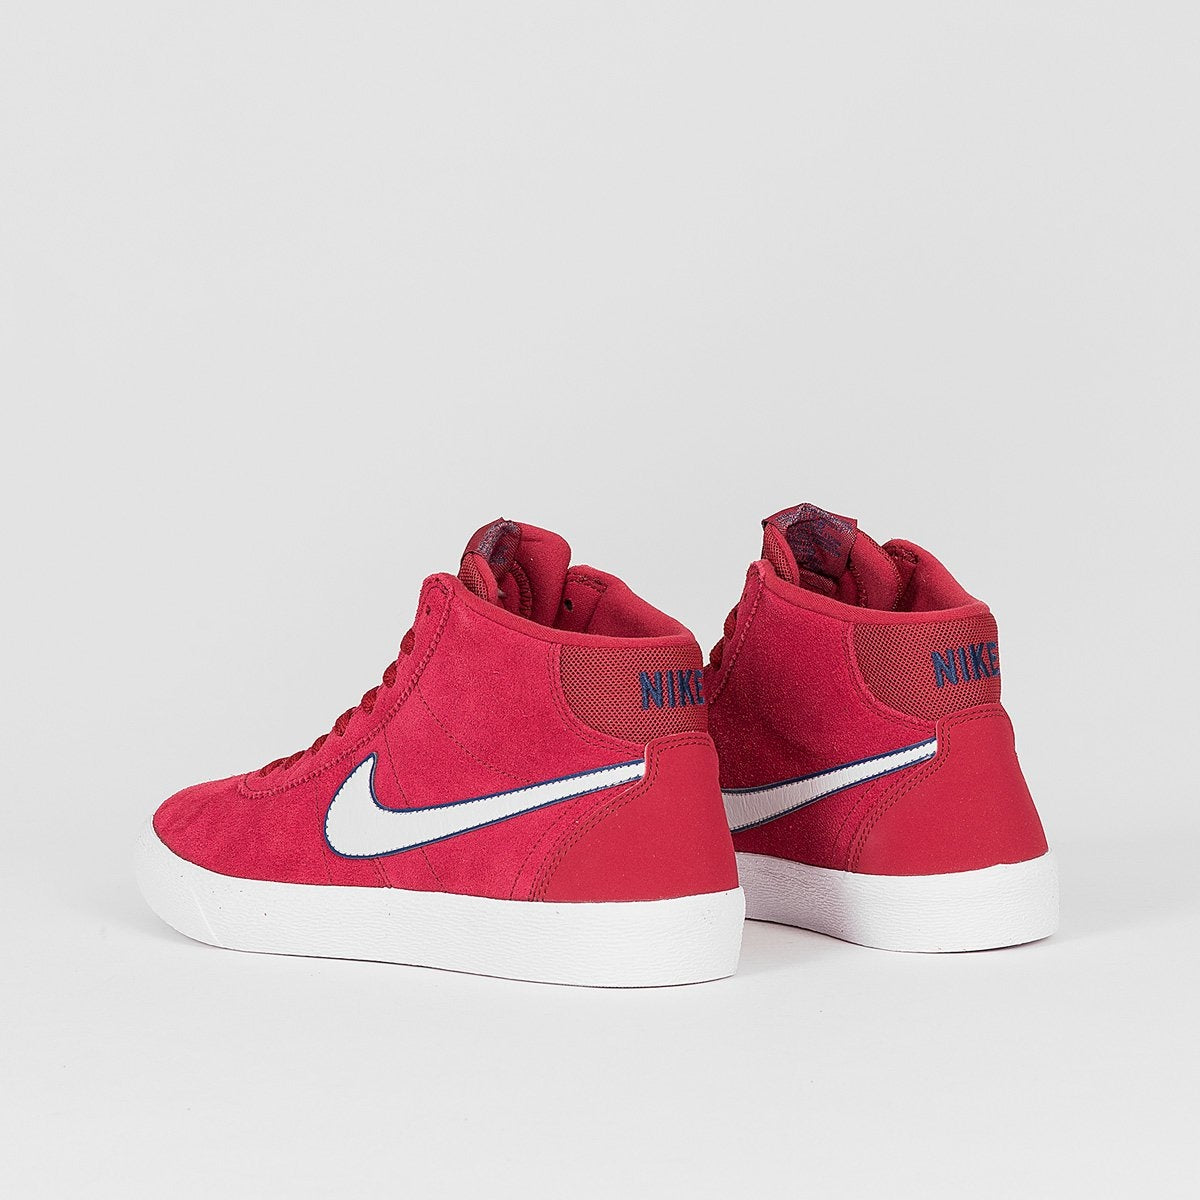 Nike SB Bruin Hi Red Crush/Vast Grey/White - Womens - Footwear